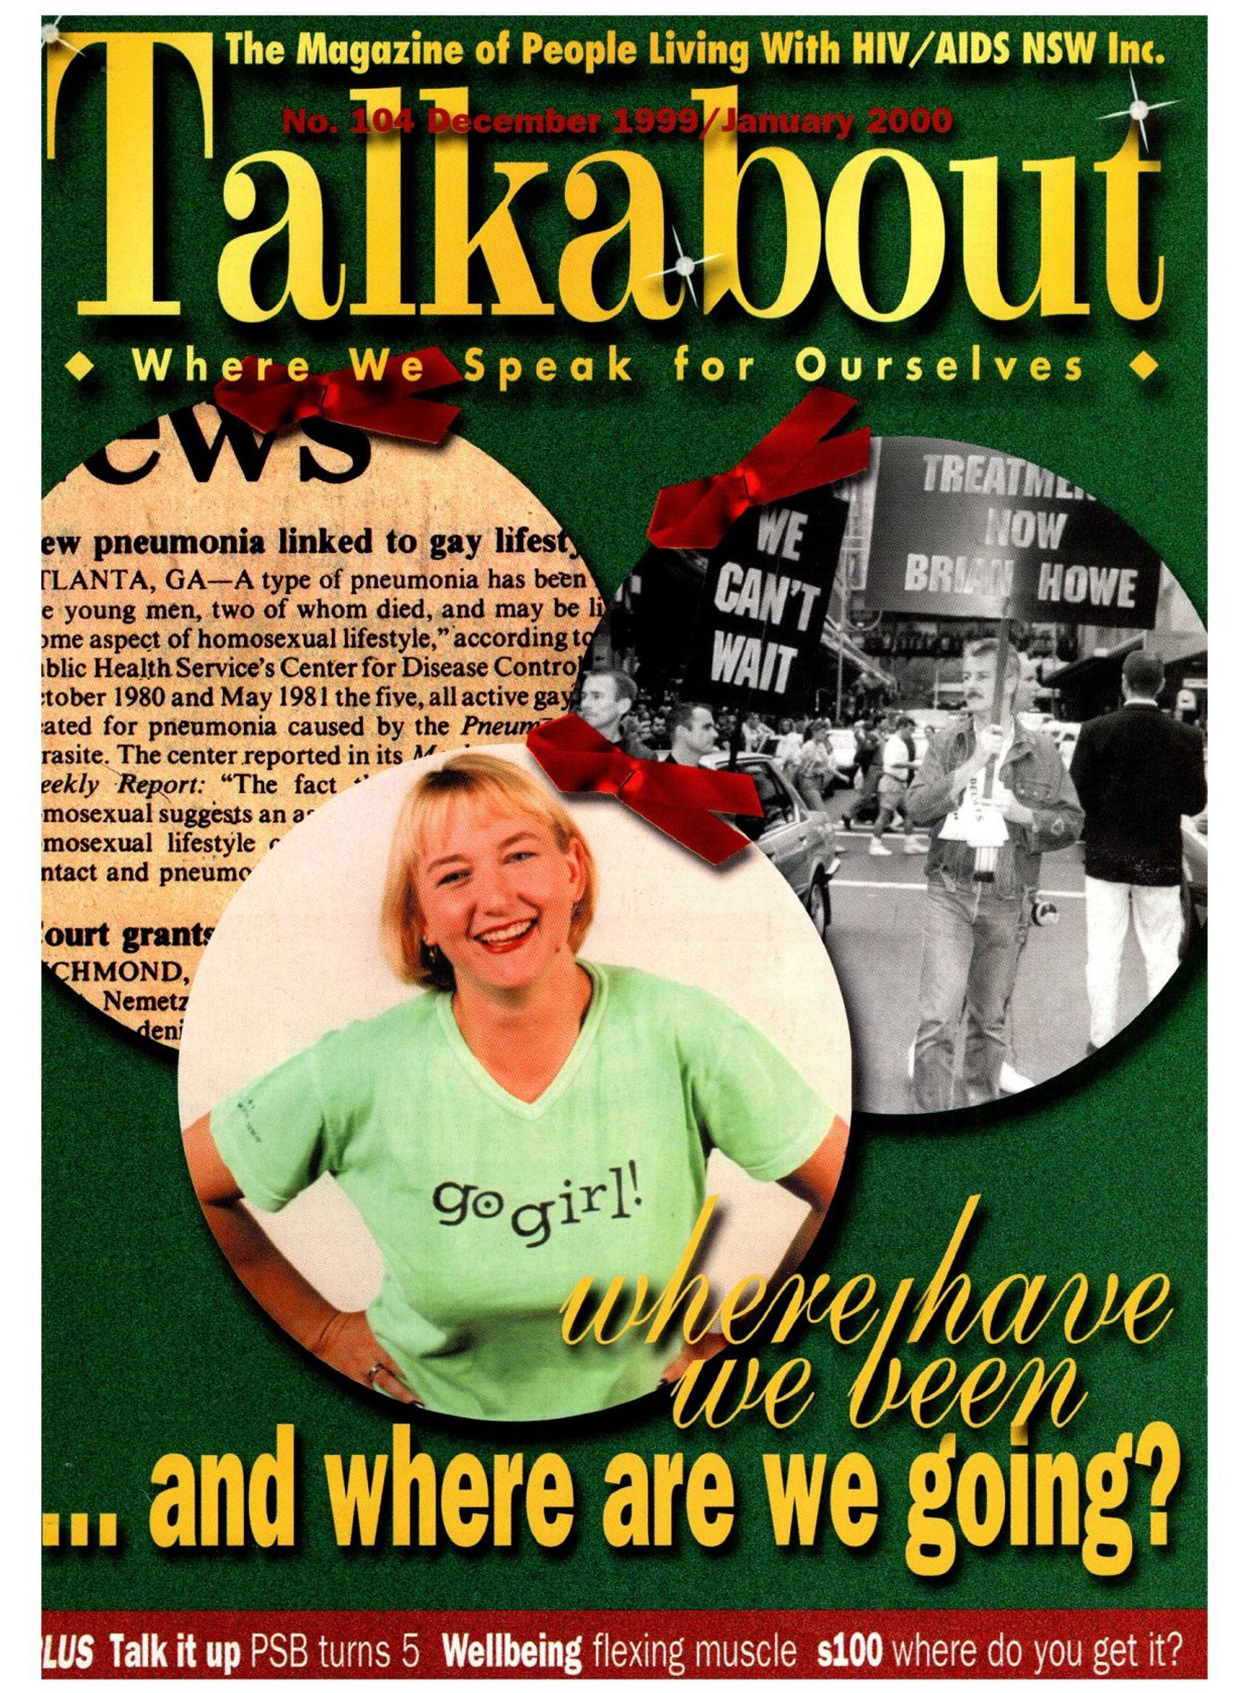 Talkabout Edition #104